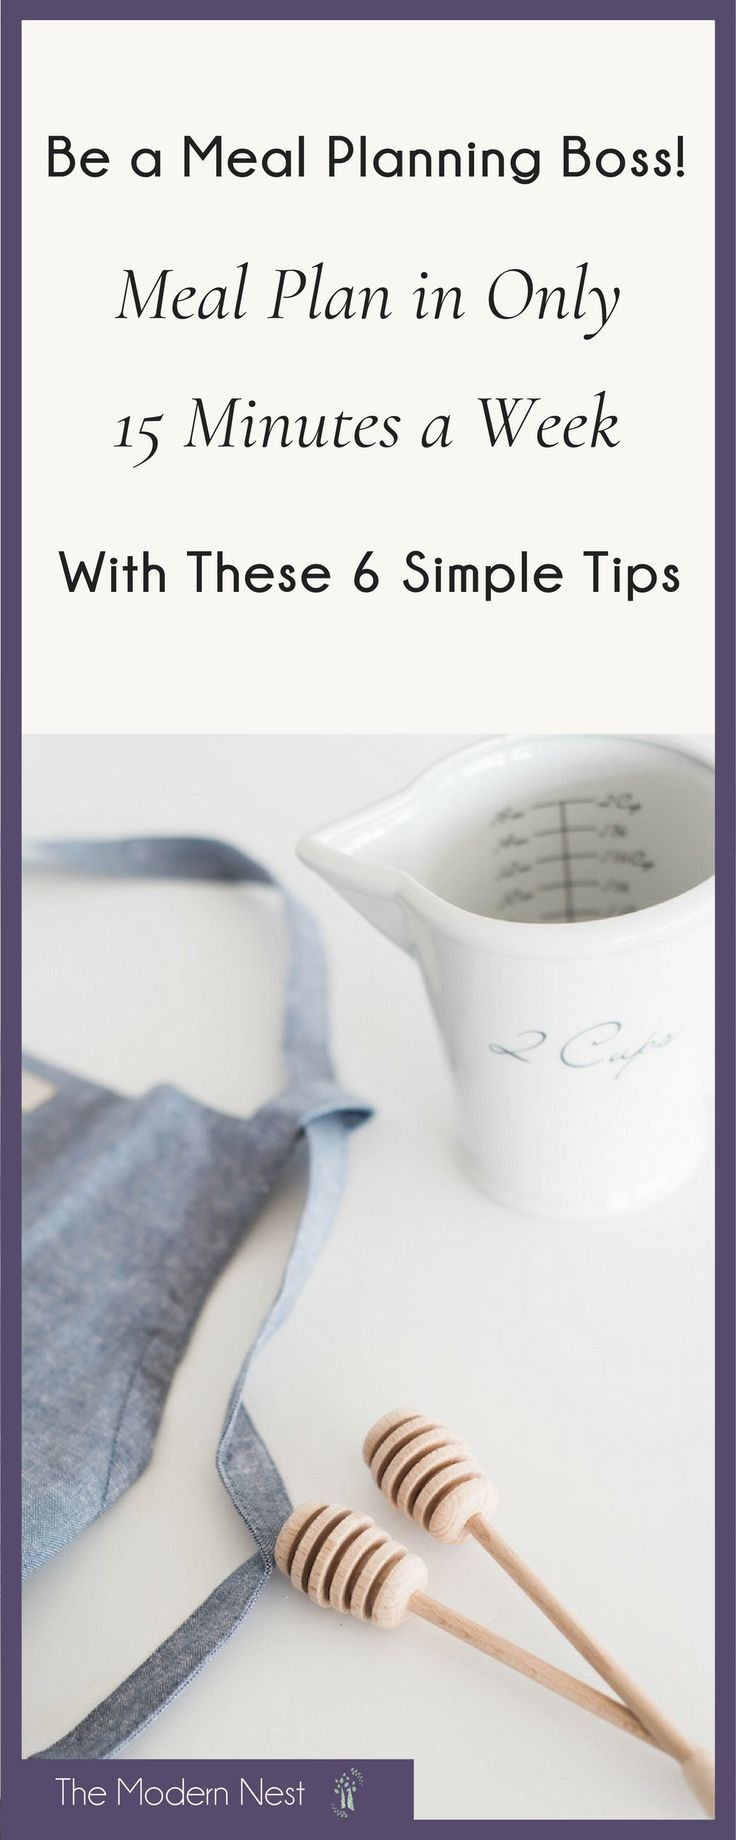 Does meal planning take you longer than it should? Here are 6 simple meal planning tips to help help you meal plan in only 15 minutes a week! Plus get my 4-page meal planner completely FREE when you join The Modern Nest community! Visit https://www.themodernnestblog.com/?p=47 for the tips and to receive your meal planner!